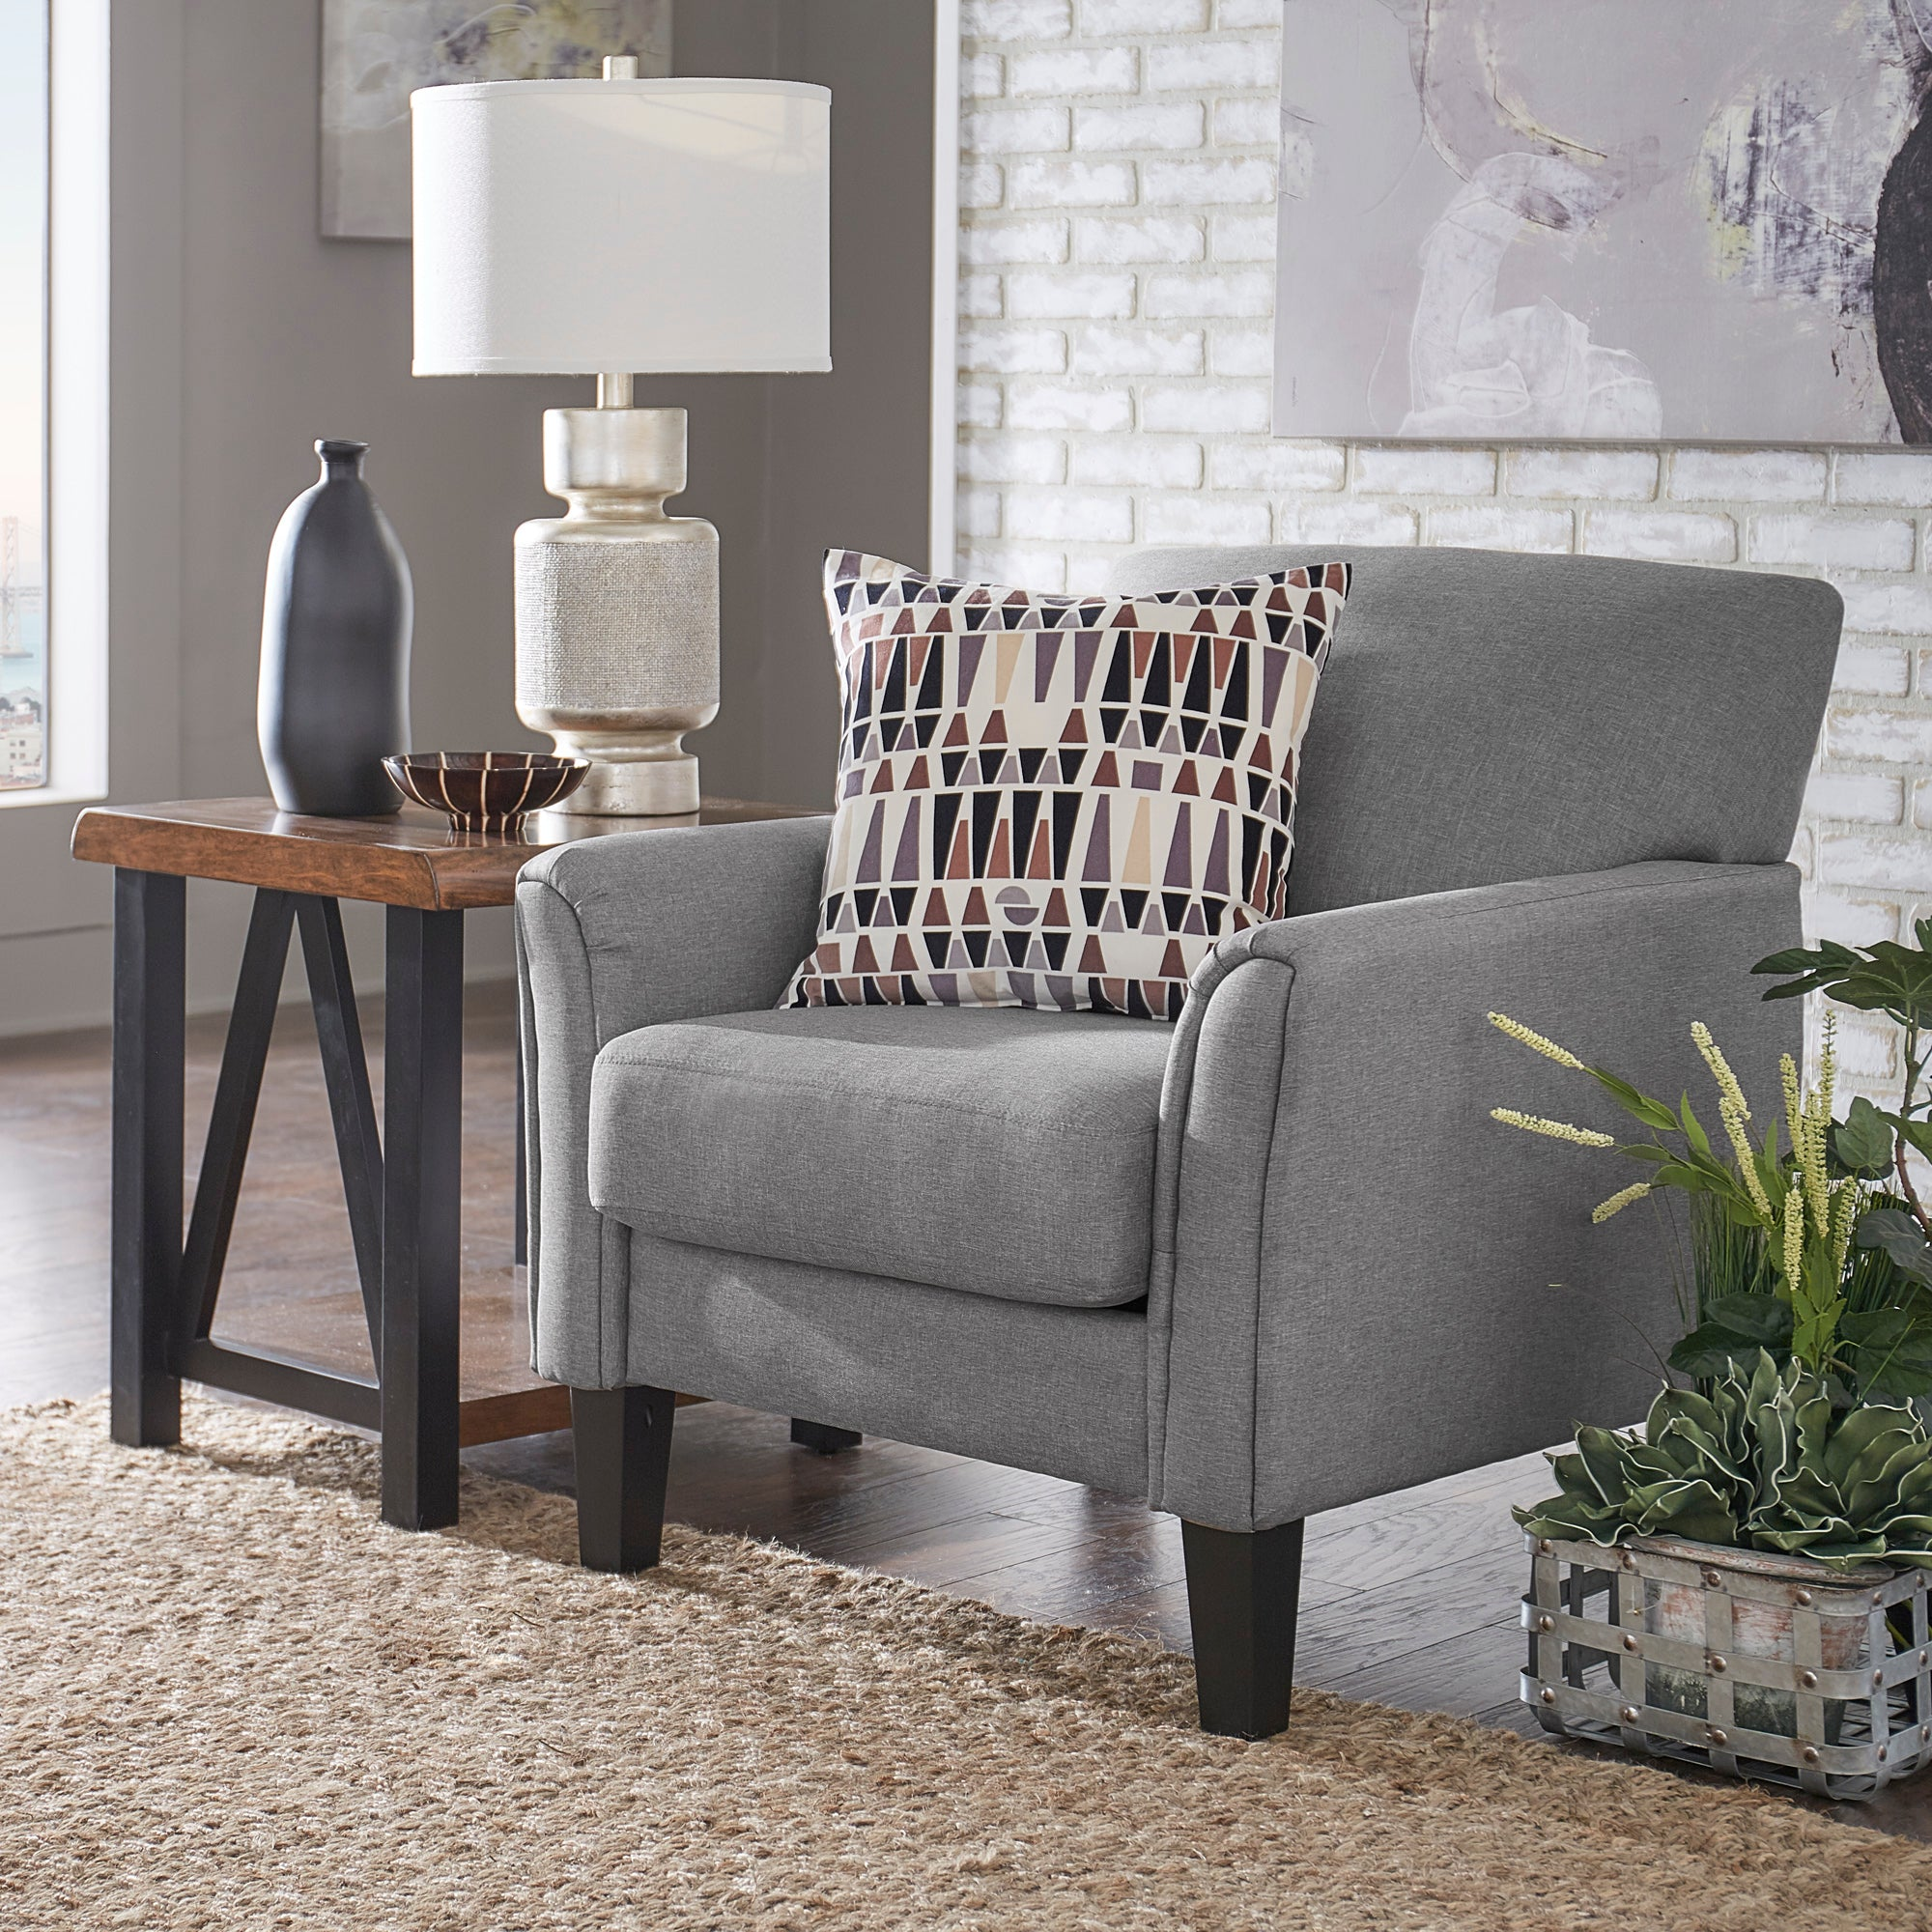 Modern Accent Chair - Grey Linen